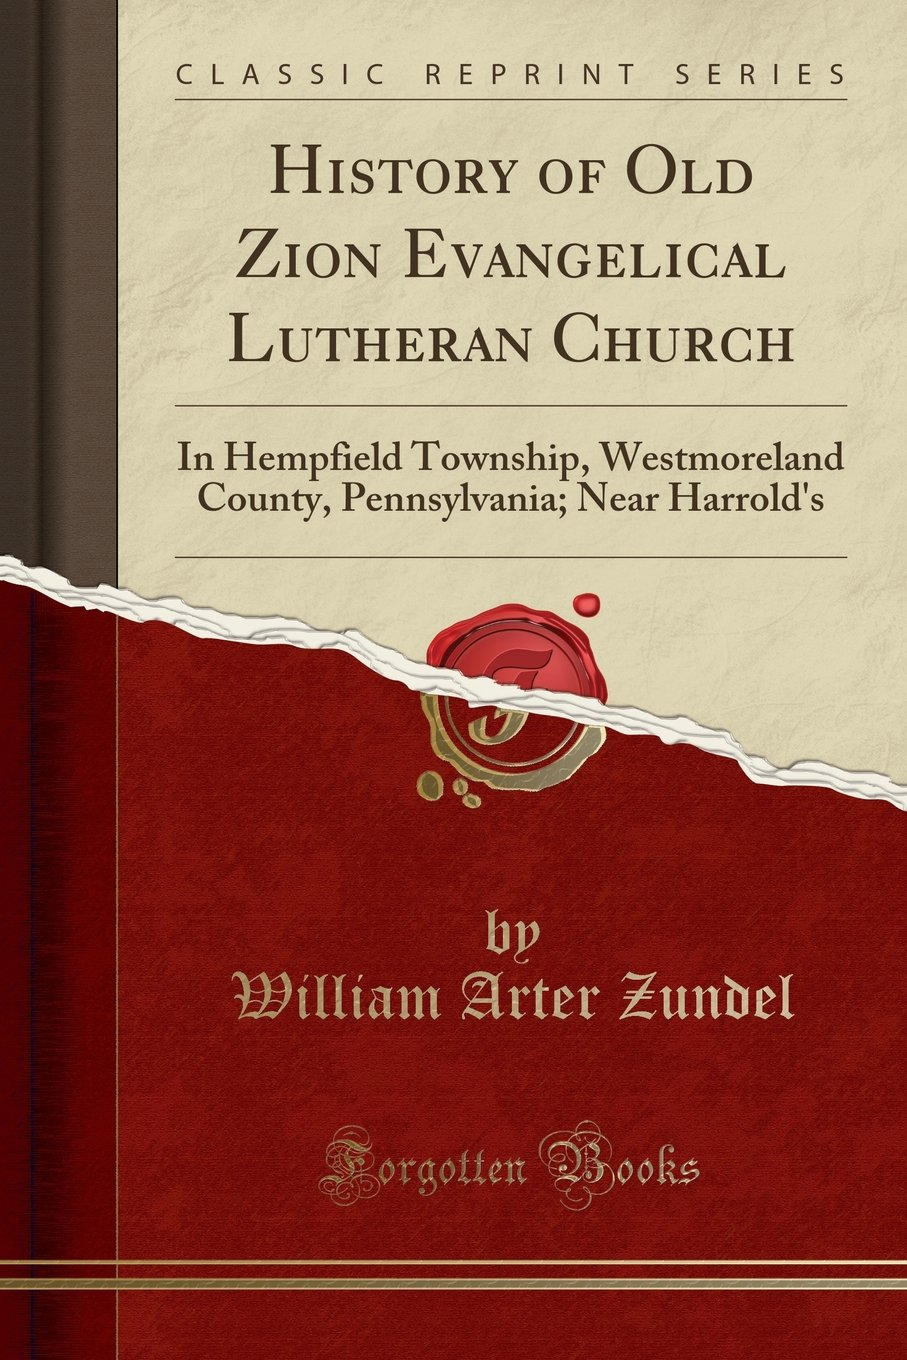 Download History of Old Zion Evangelical Lutheran Church: In Hempfield Township, Westmoreland County, Pennsylvania; Near Harrold's (Classic Reprint) PDF